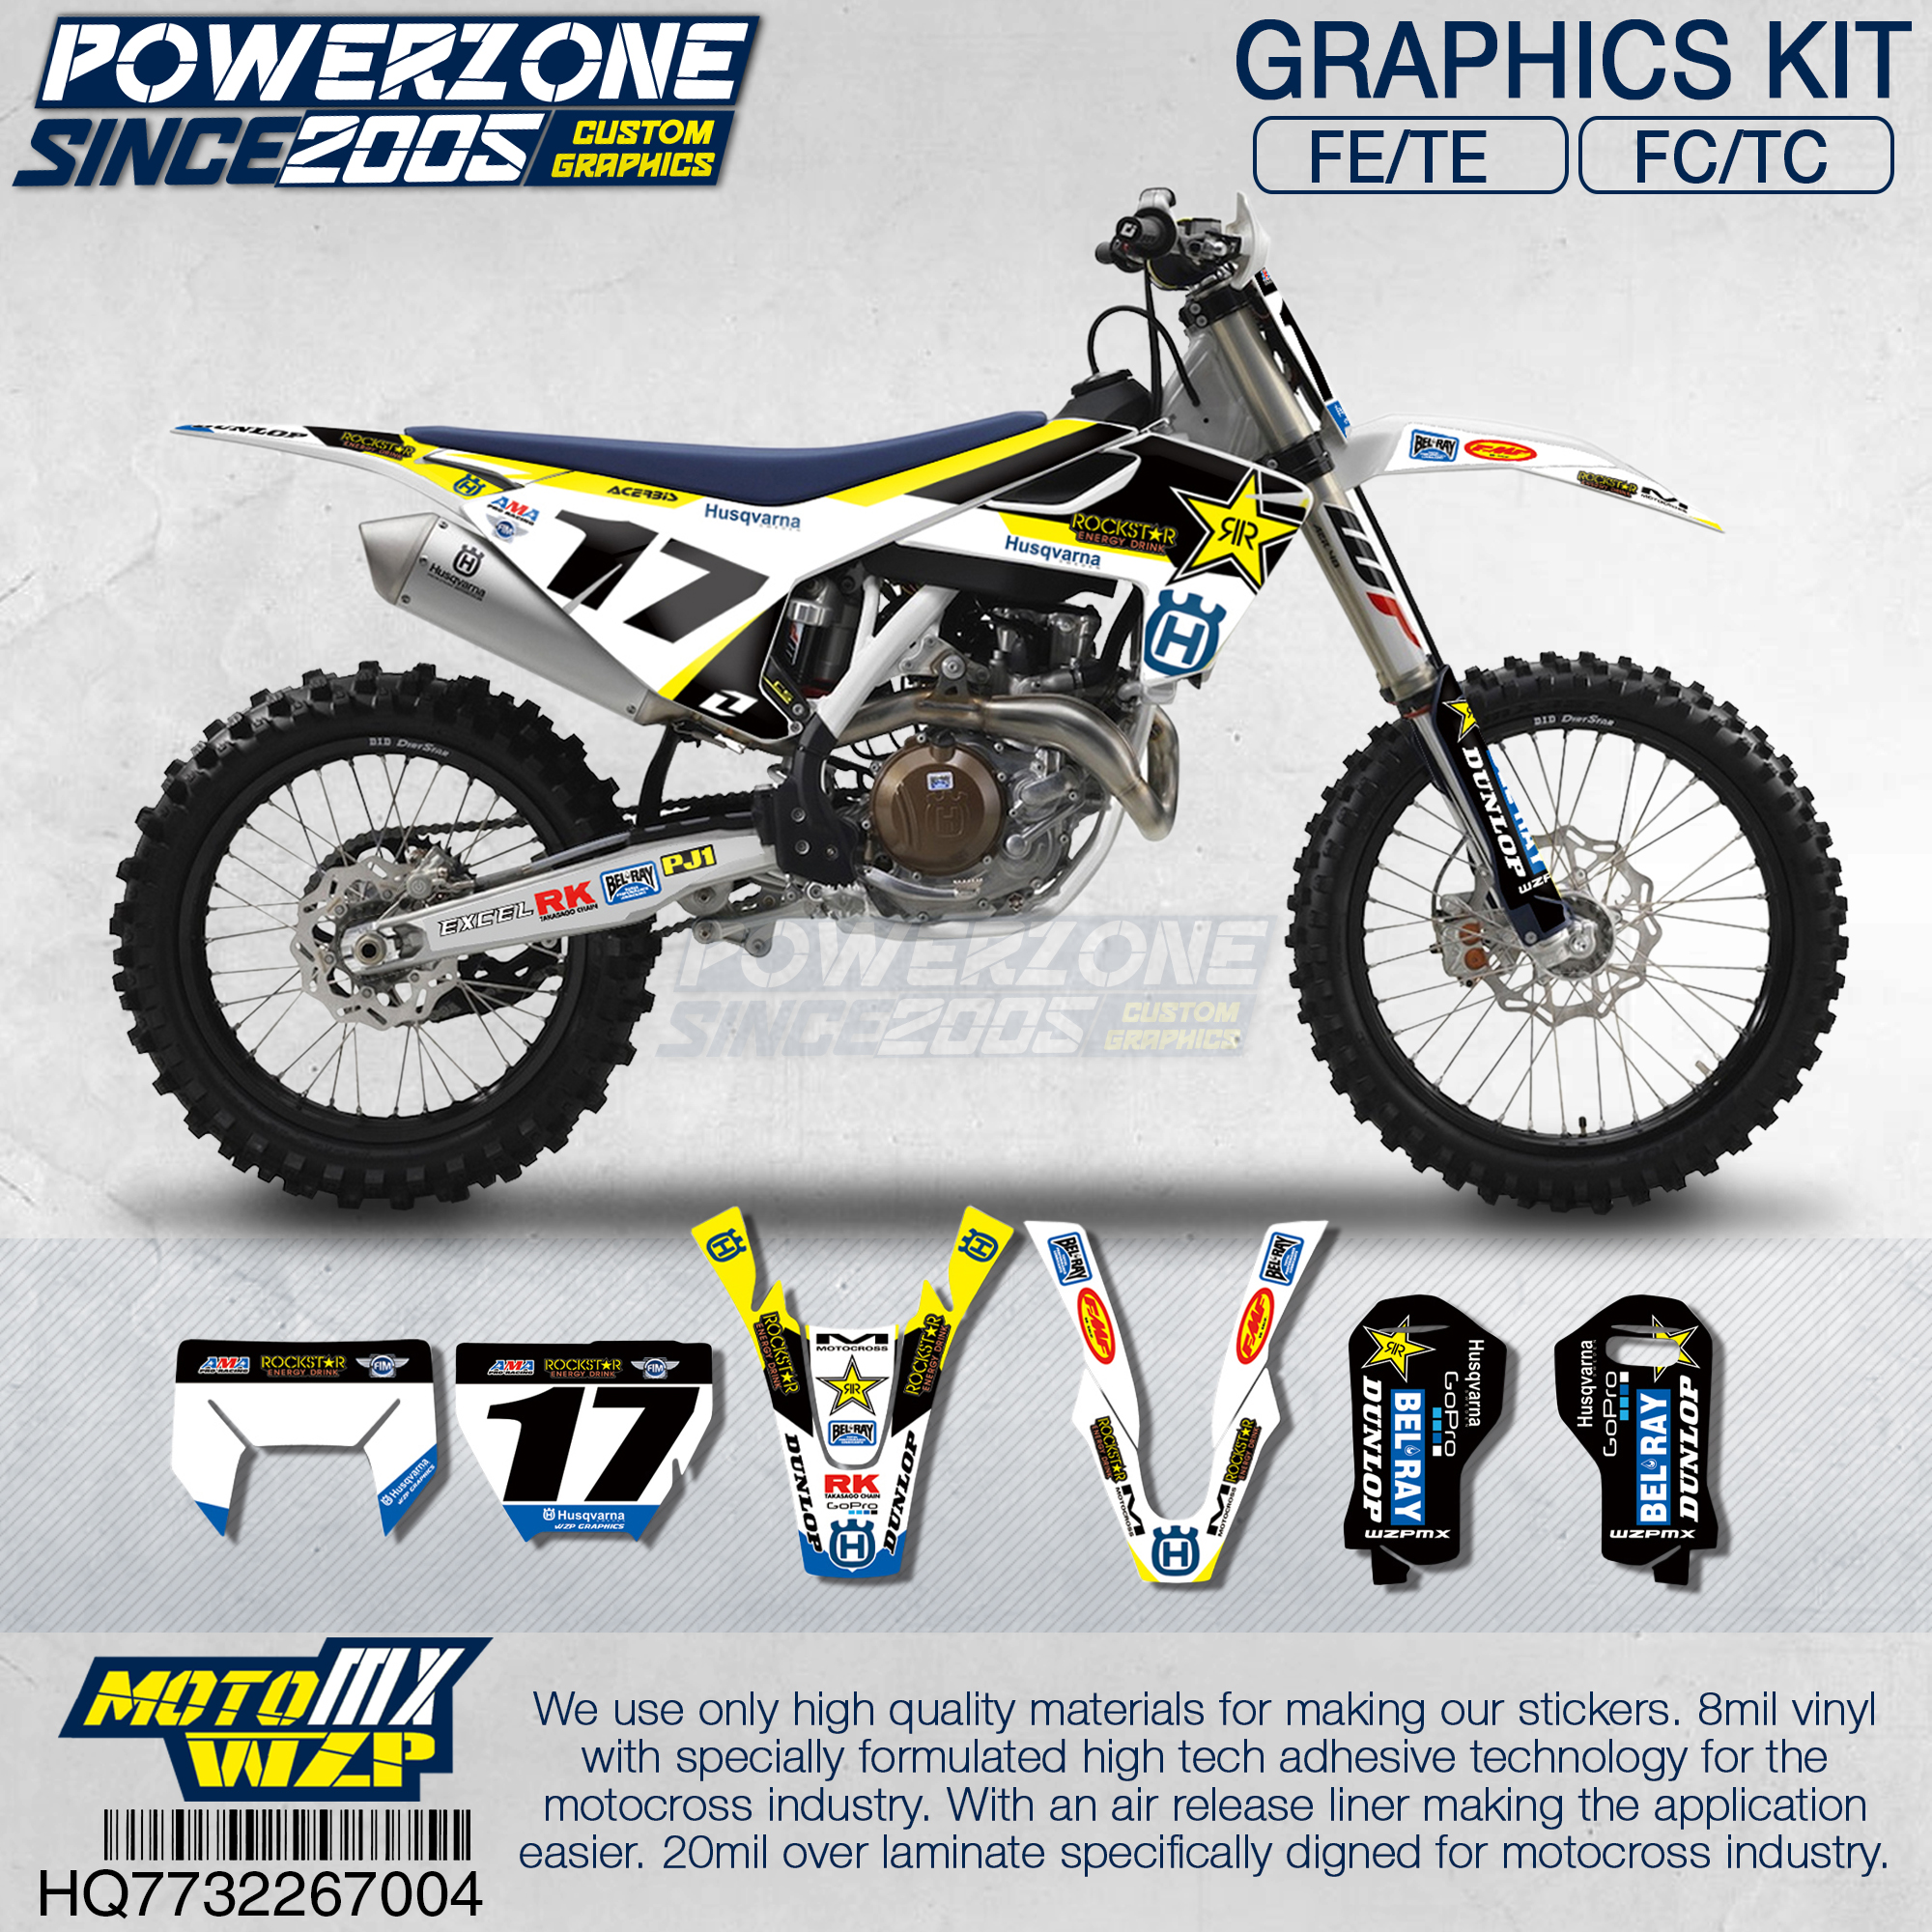 PowerZone Team Graphics Backgrounds Decals 3M Custom Stickers Roc Kit For Husqvarna 2017 18 19 FE TE FC TC 250 350 450 500cc 704